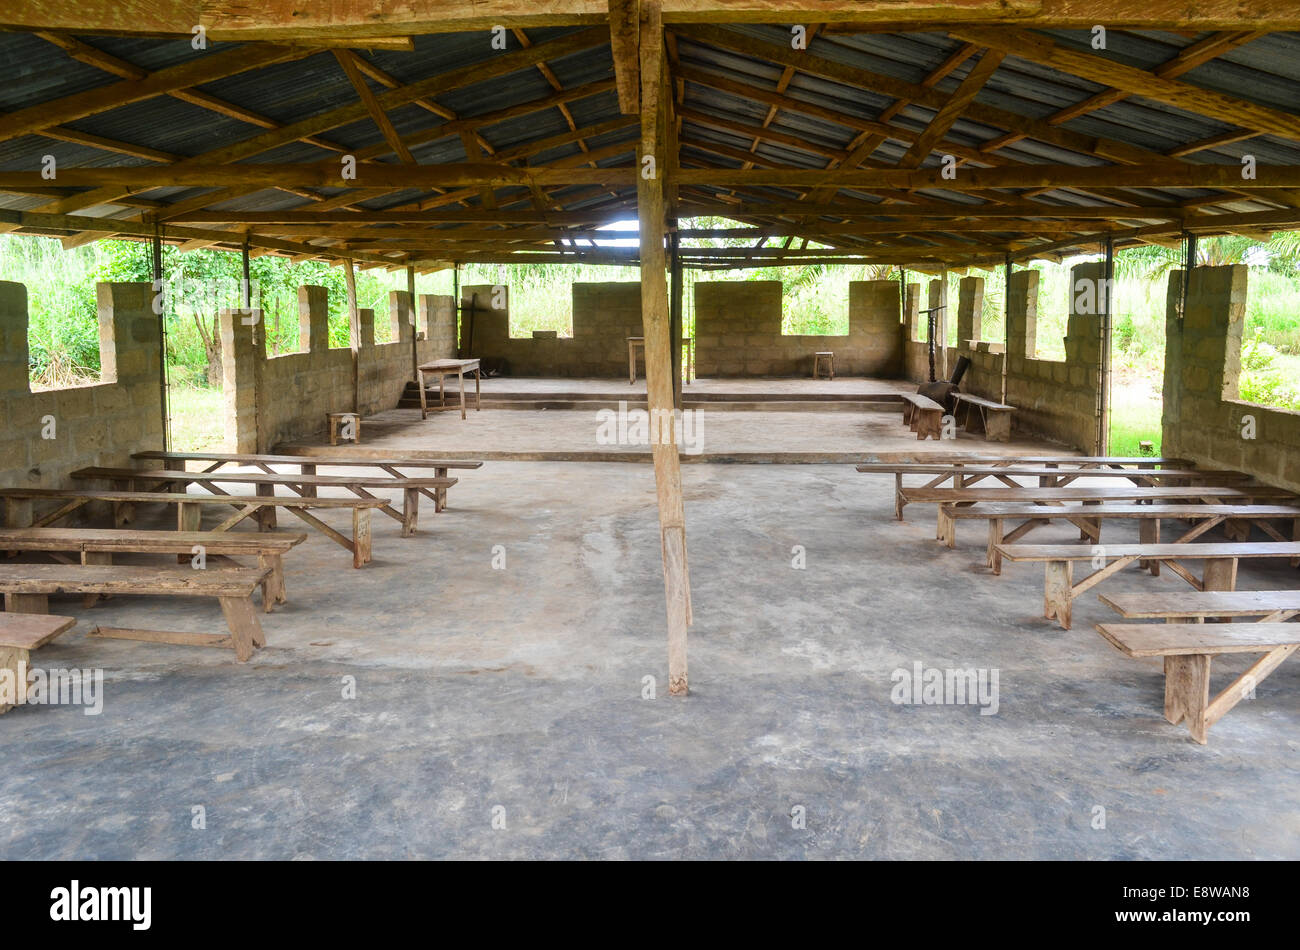 A church in rural Nigeria - Stock Image